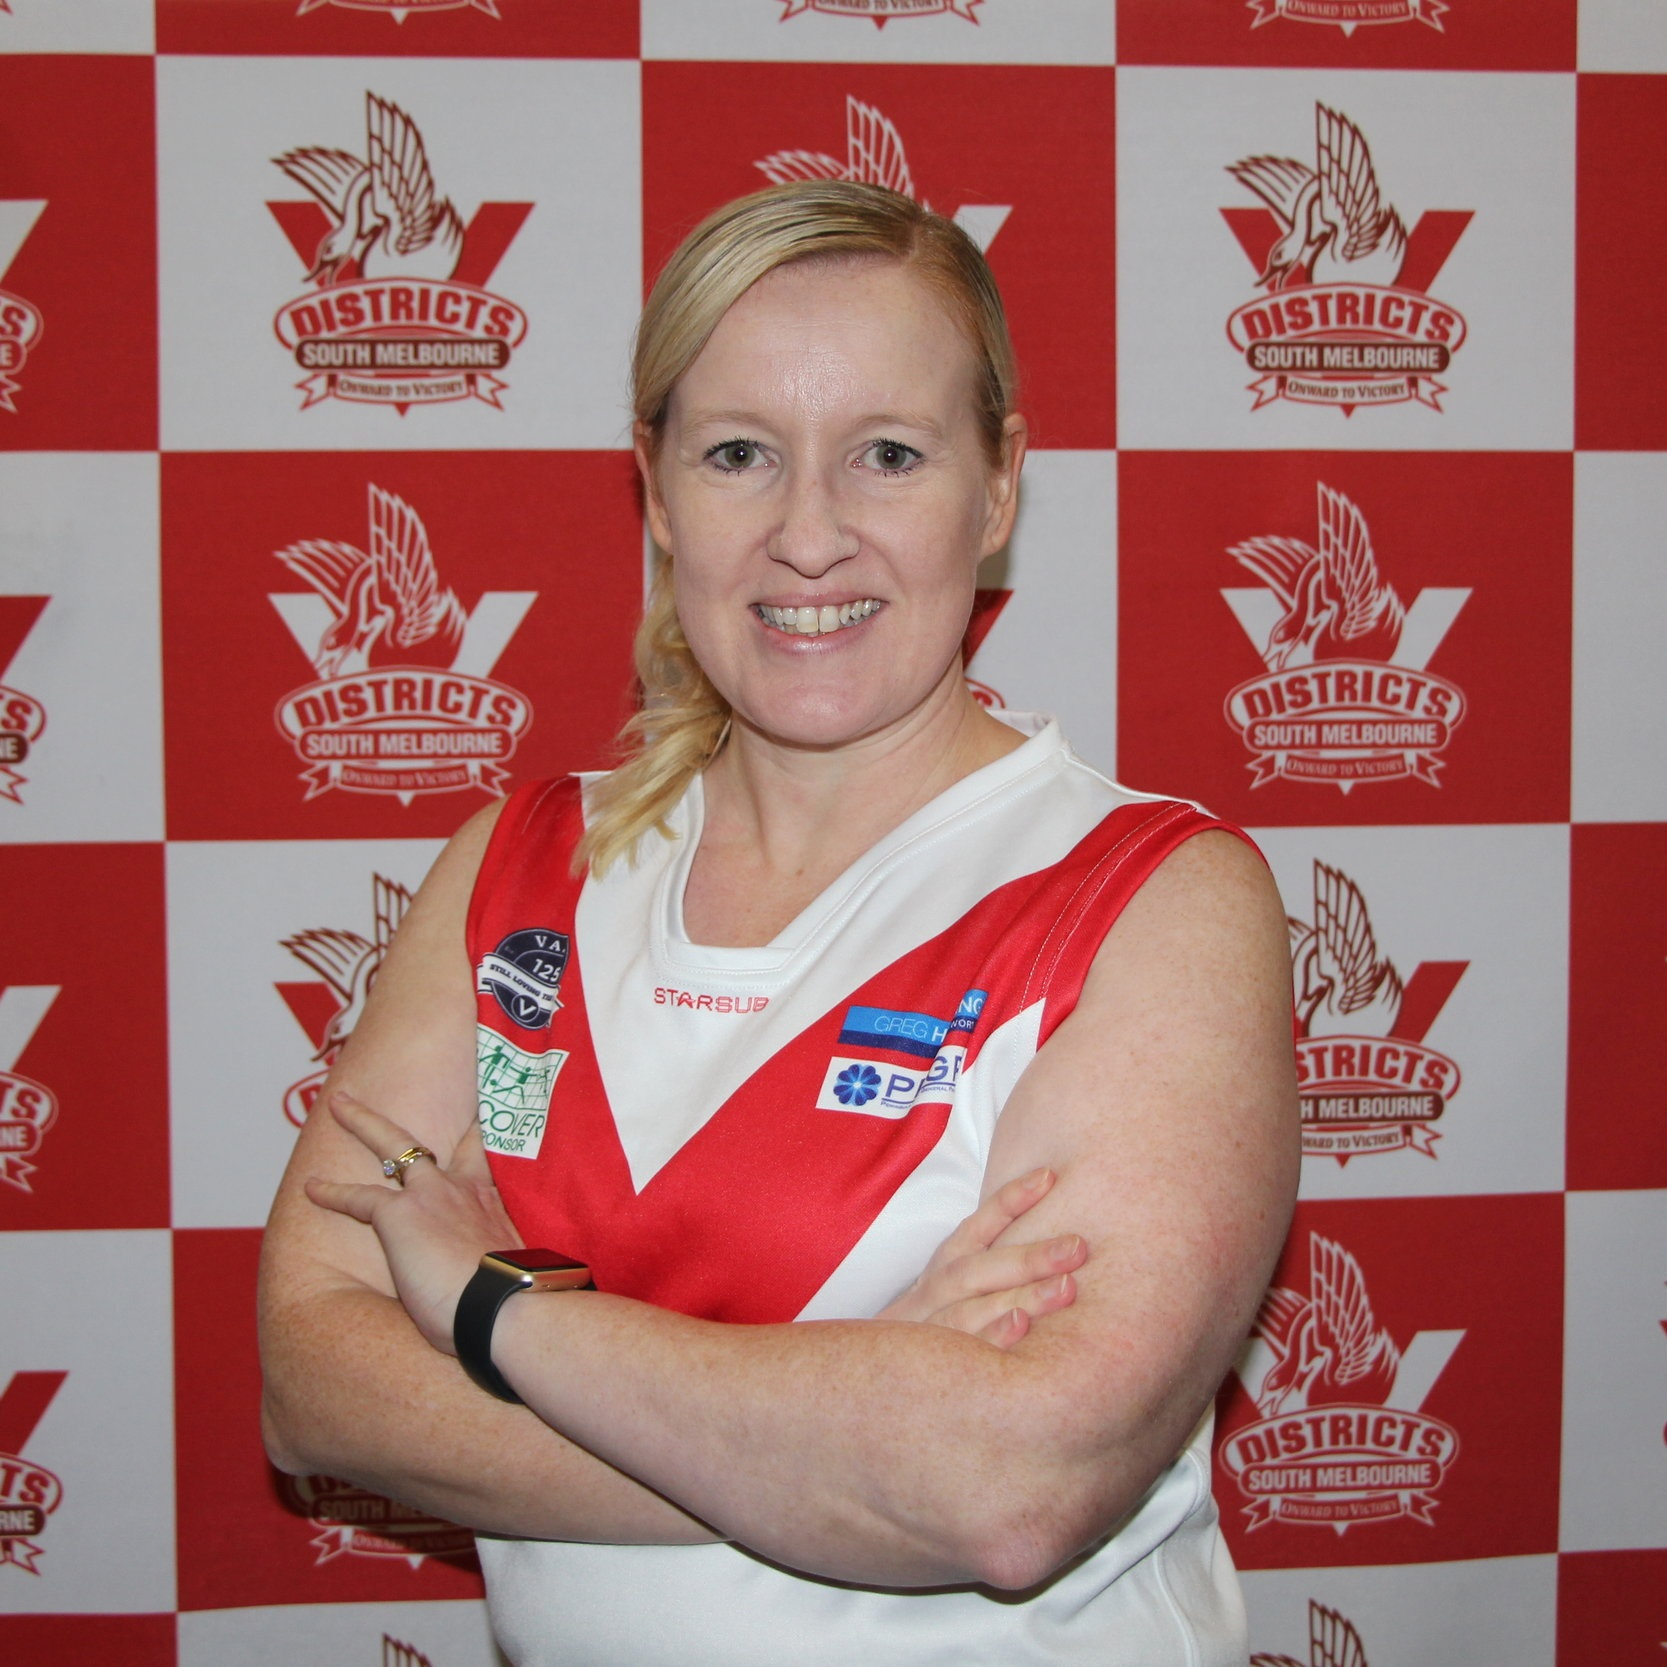 Ange  Ange has a long history with footy having been one of the first female's to regularly boundary umpire country footy in Victoria- she has now come over to the over side of the boundary and has joined the Bloods wearing #49. Away from the oval Ange is a lawyer and mum to 2 Auskickers! When not up to her neck in footy you'll find Ange binge watching Netflix with her family whilst eating chocolate!